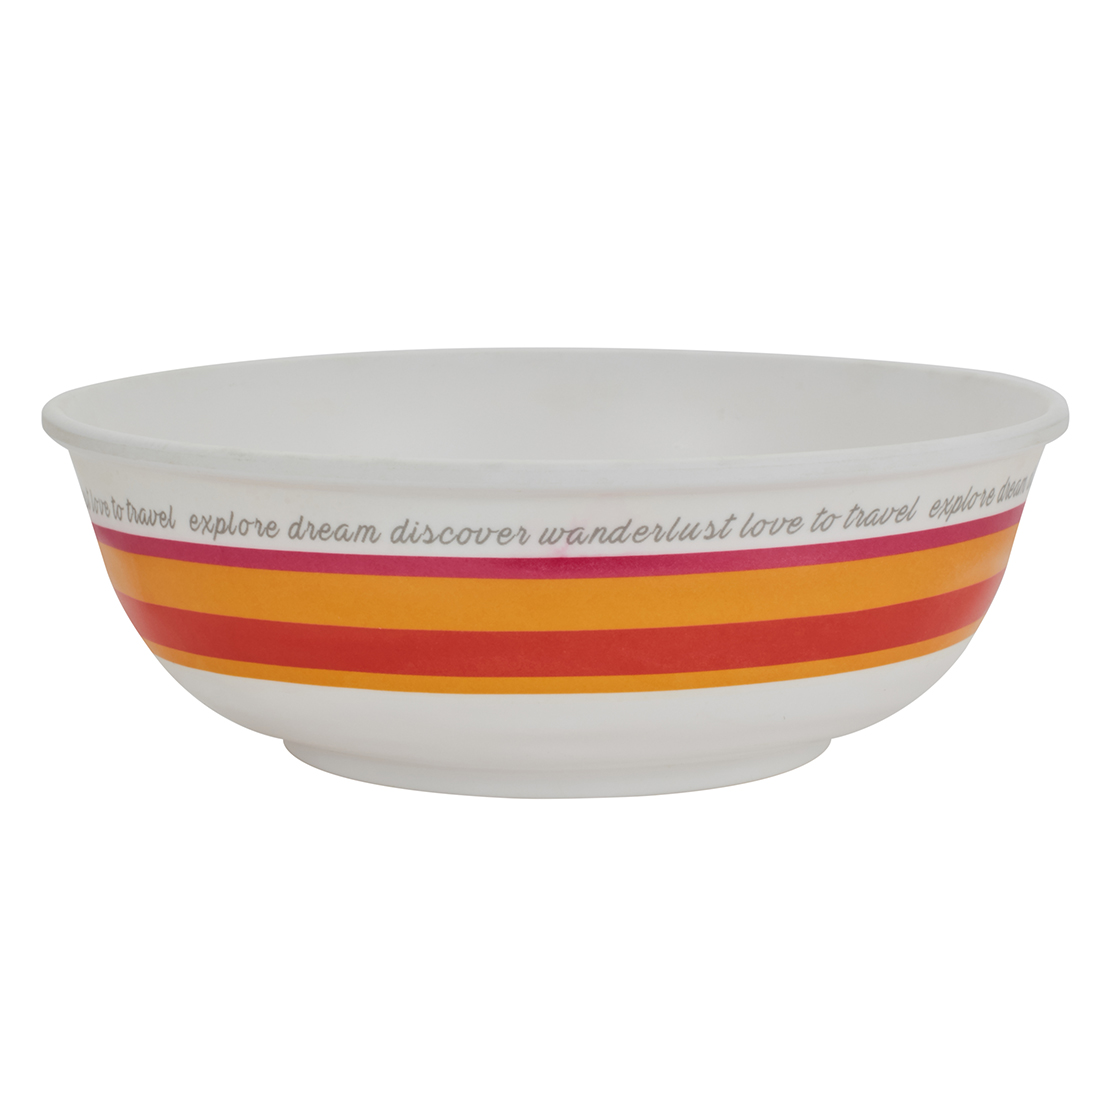 Persain 5Th Avenue Round Serving Bowl Food Grade Melamine Serving Bowls in Multi Color Colour by Living Essence